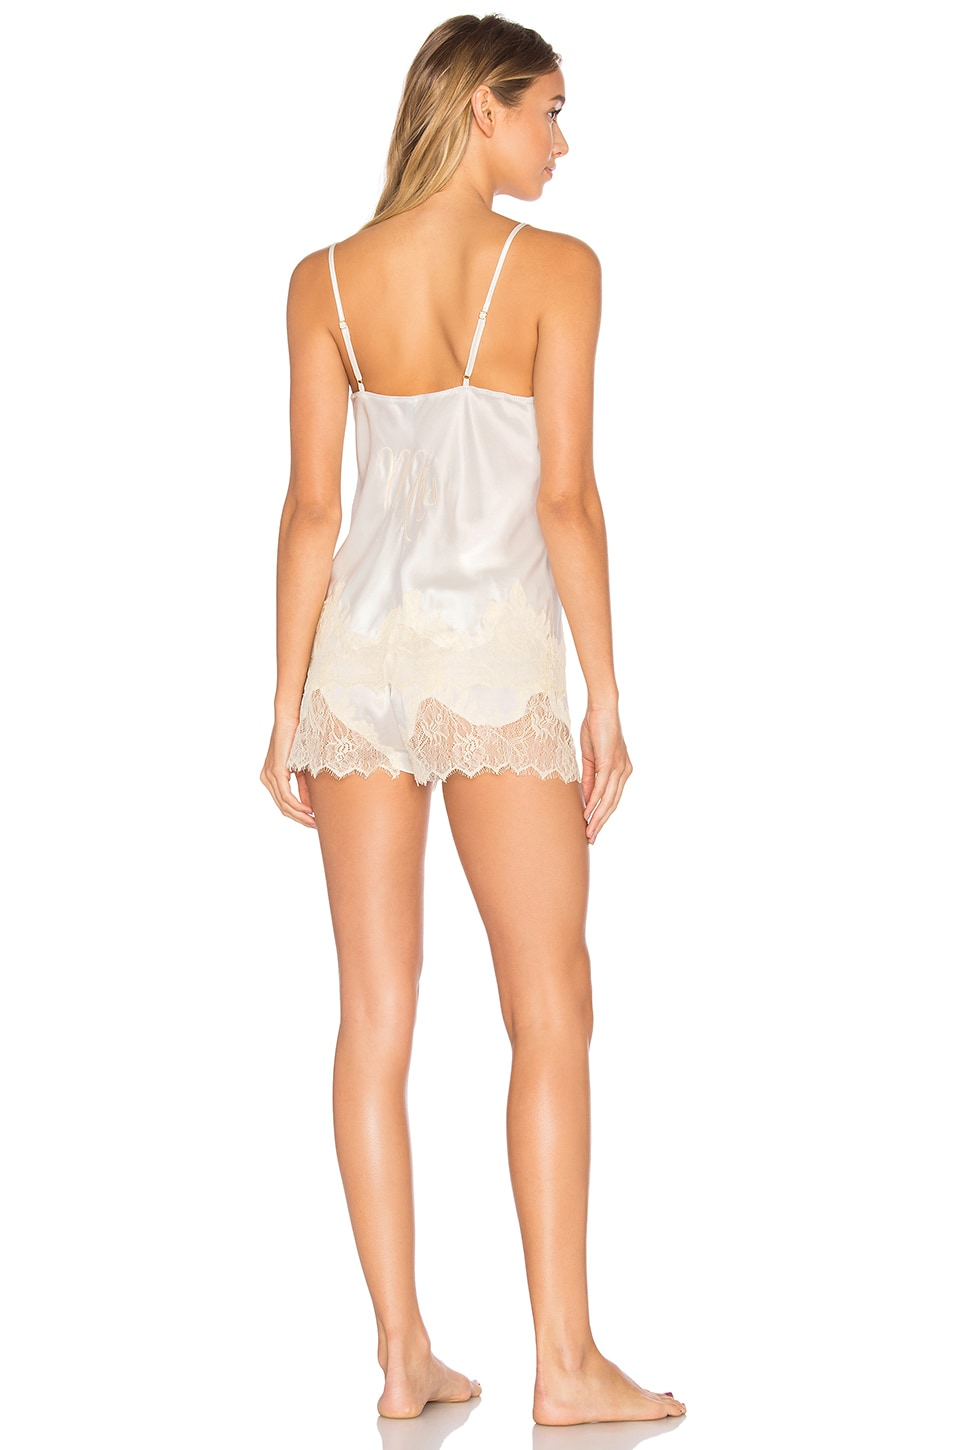 KISSKILL Mrs Short Pajama Set in Ivory